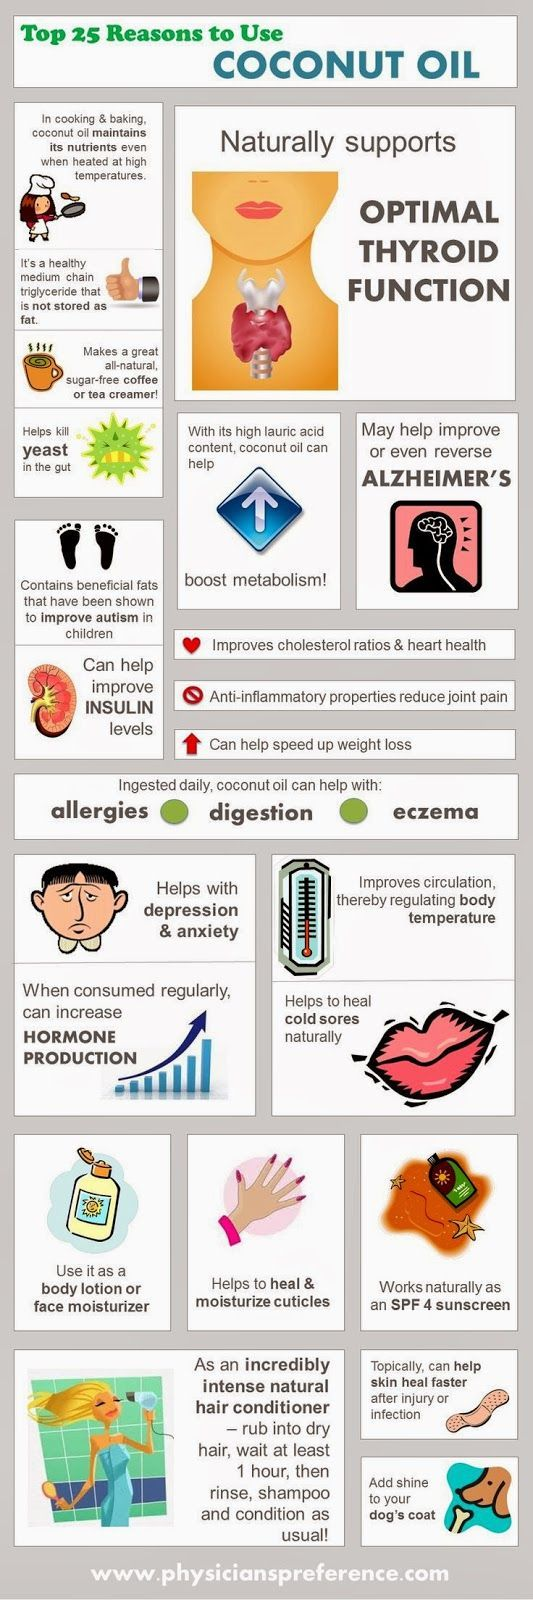 Coconut Oil for Health, Weight Loss, Healing and Beauty [Infographic] :: Top 25 Reasons to Use Coconut Oil Limes can help you lose weight and live a healthier life style, find out how!